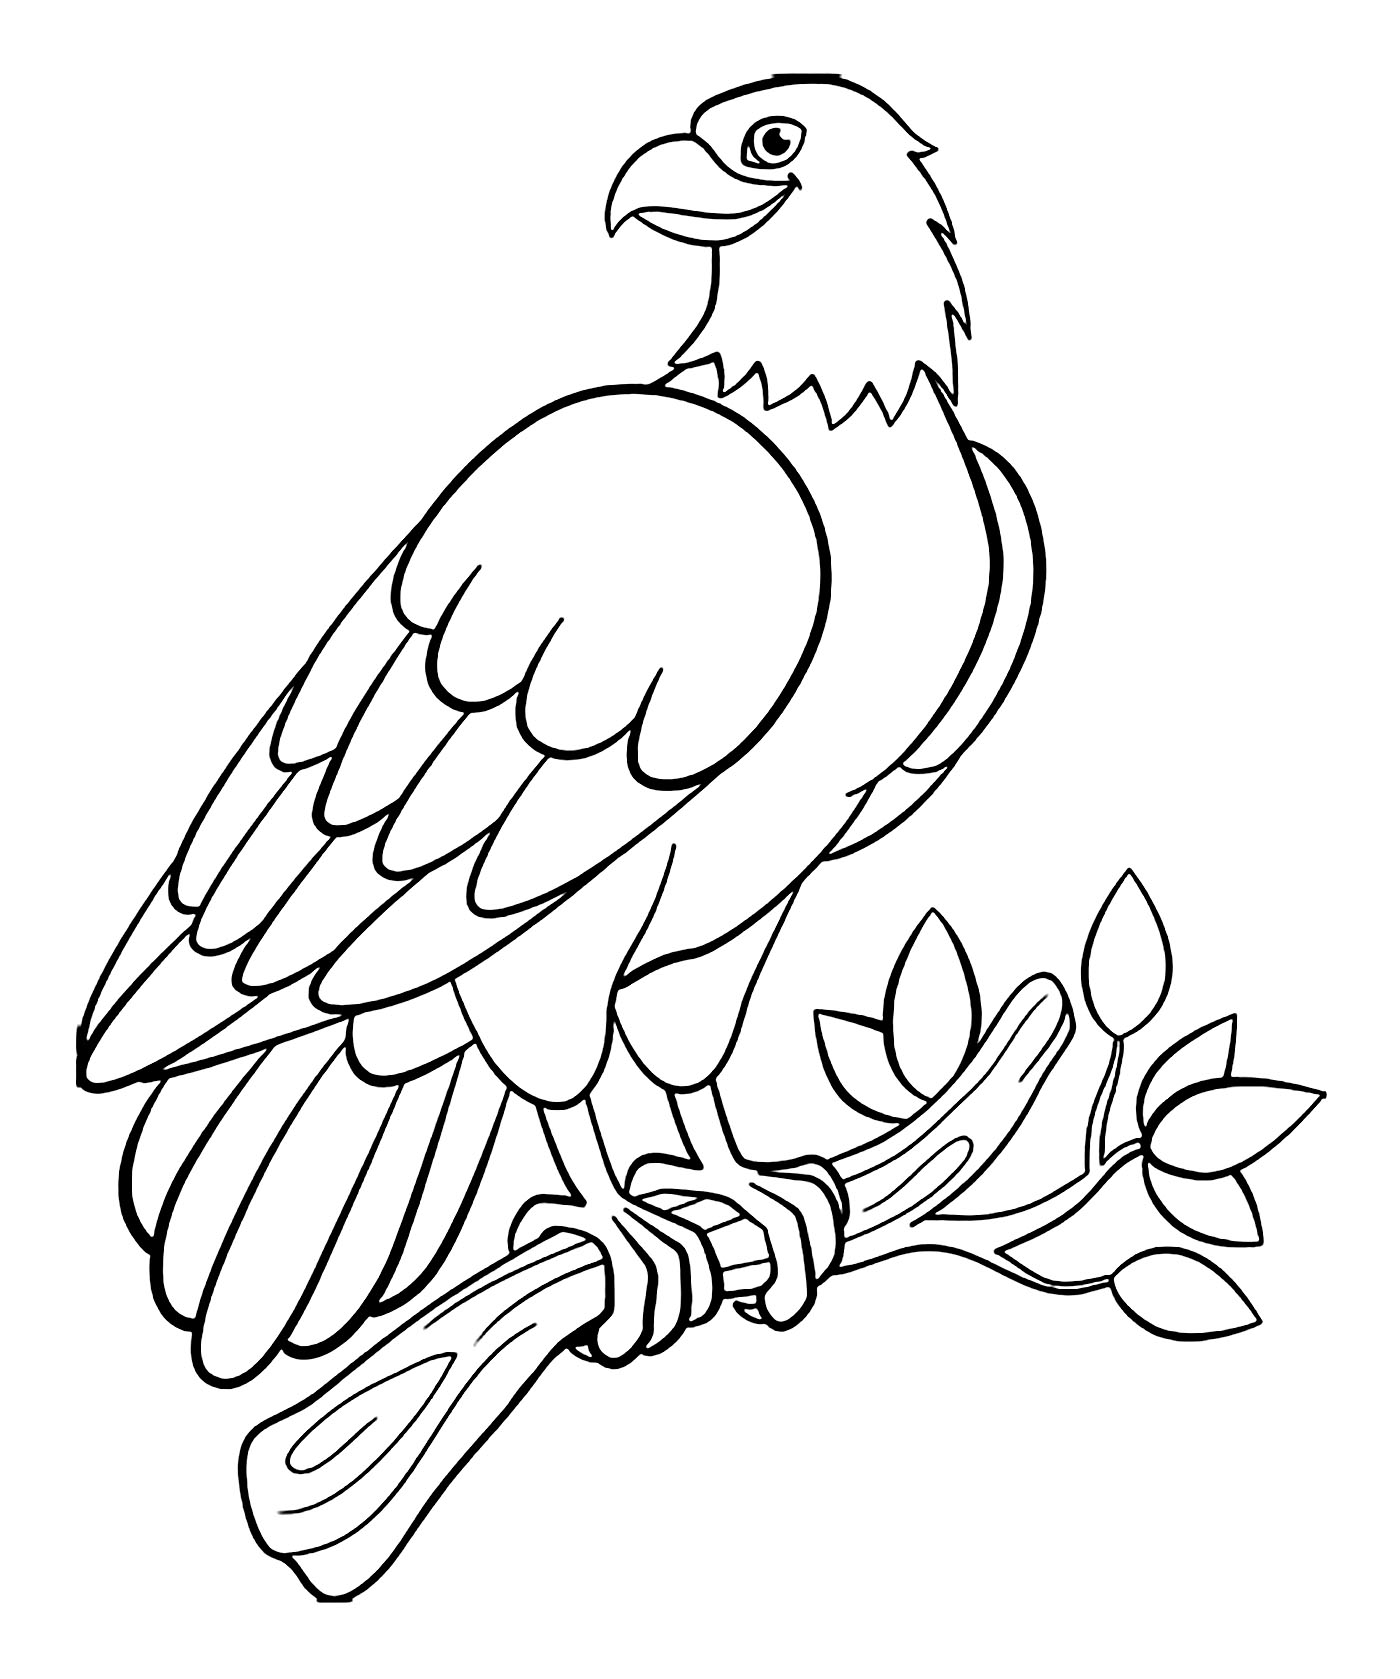 Coloring bird for kids